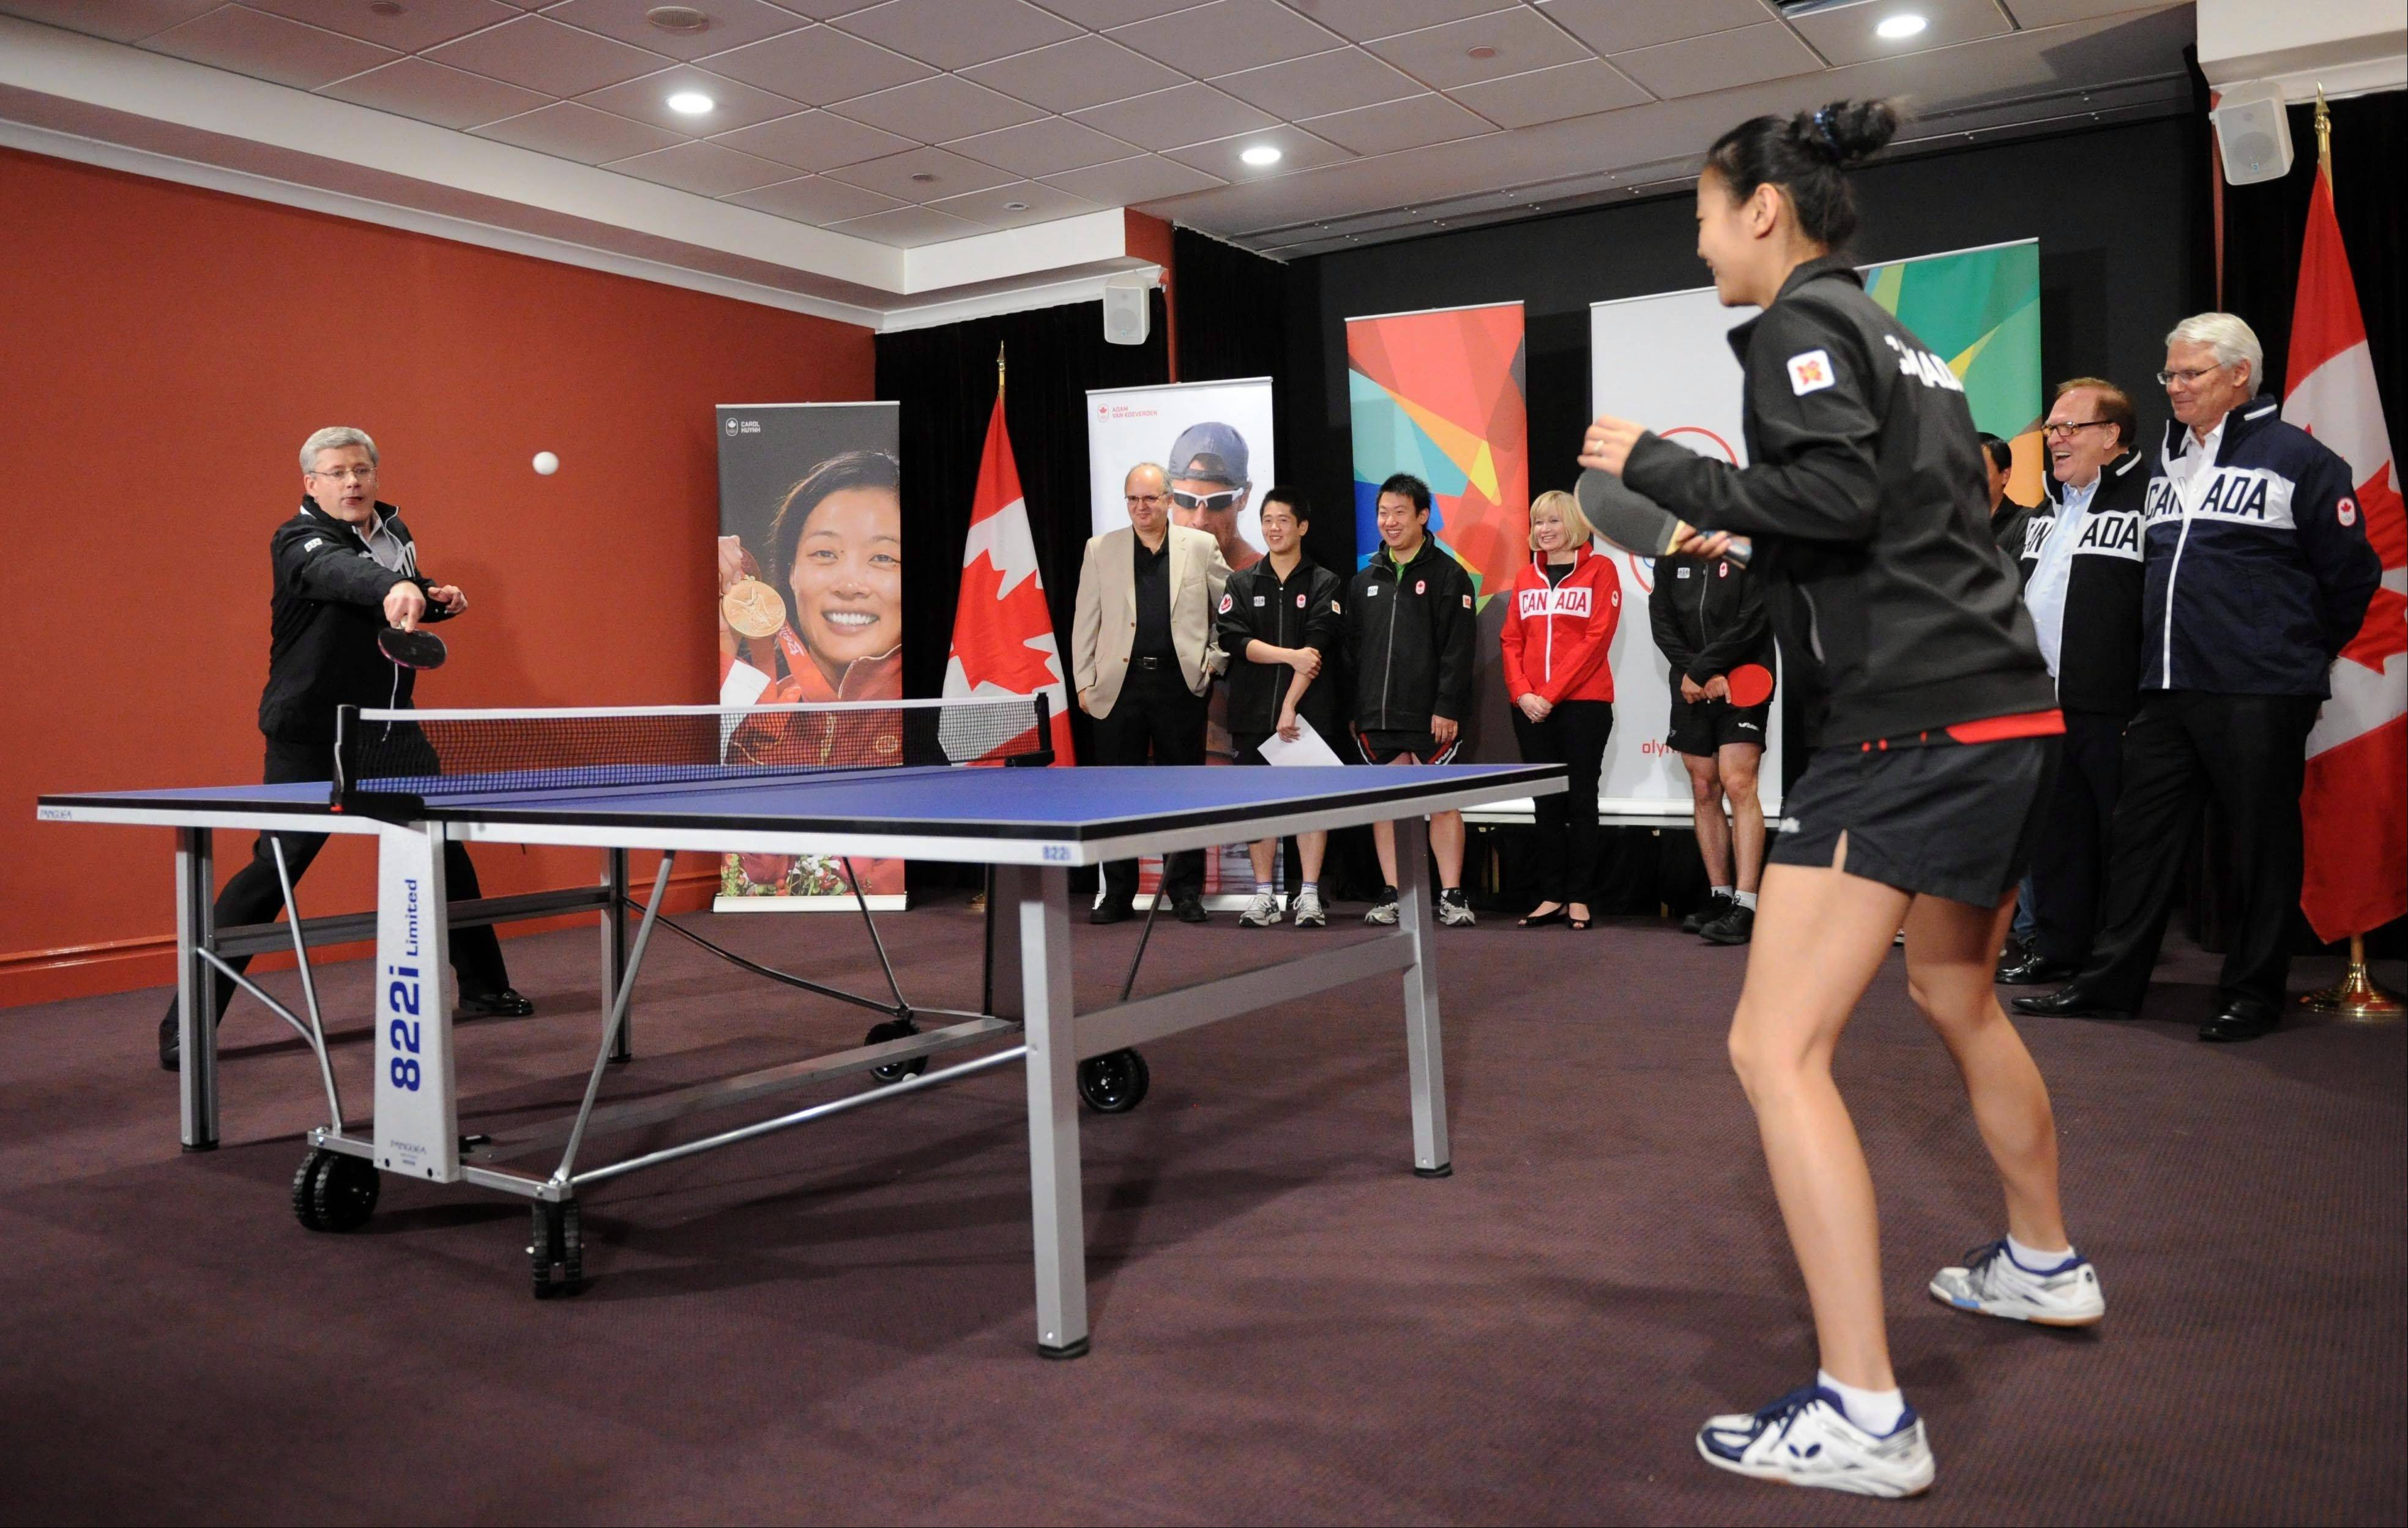 Prime Minister Stephen Harper plays a game of table tennis with Team Canada's Mo Zhang at Canada House in London on Tuesday, June 5, 2012. Harper announced that Canada House would be designated as Canada Olympic House during the 2012 London Olympics.